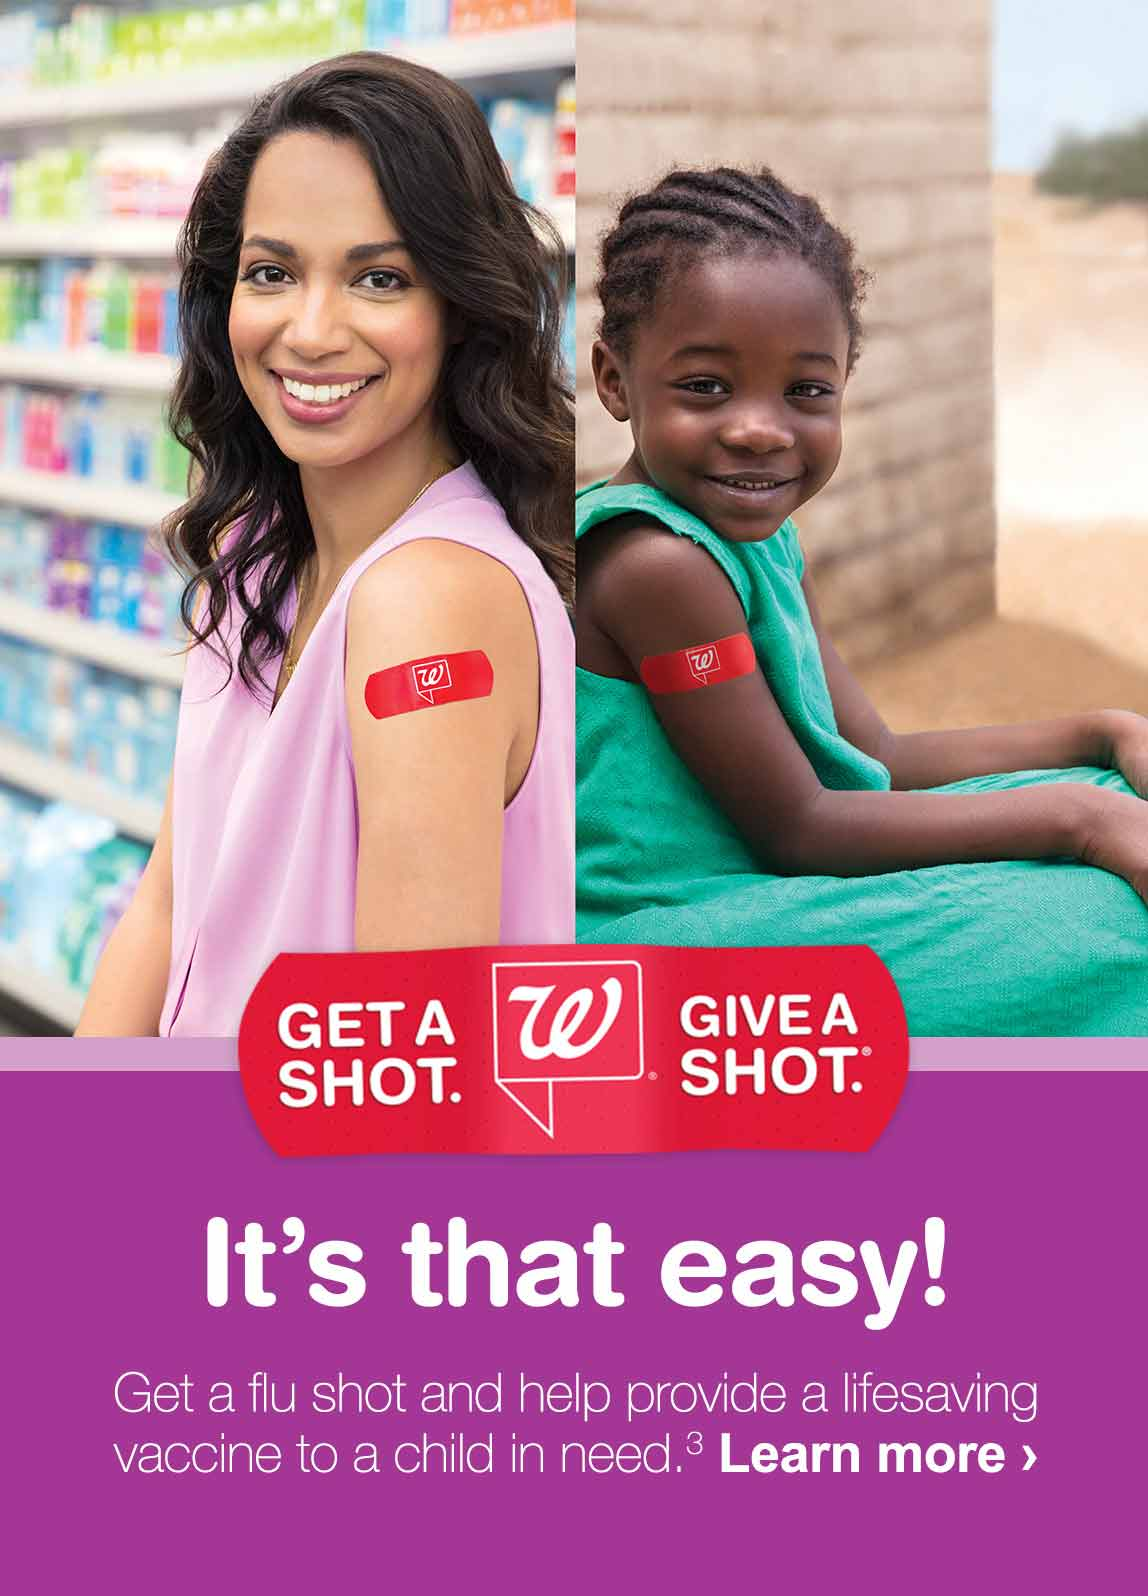 Get a shot. Give a shot. It's that easy! Get a flu shot and help provide a lifesaving vaccine to a child in need.(3) Learn more.